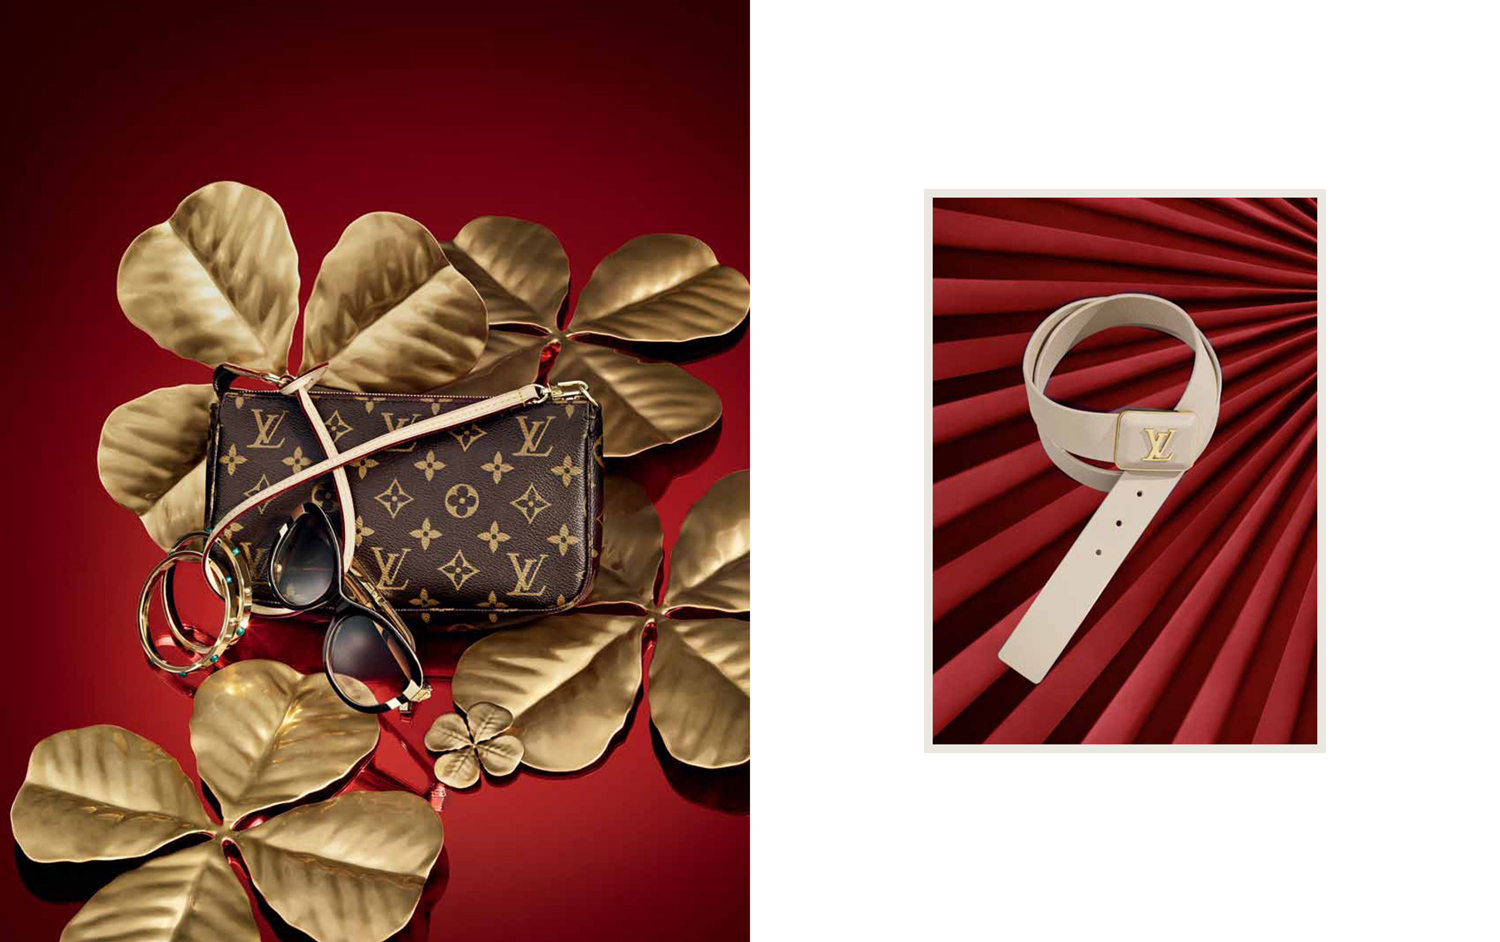 Magnus-Naddermier-Louis-Vuitton_XMAS12_Brochure-Photo-Toby-McFarlan-Pond-02.jpg